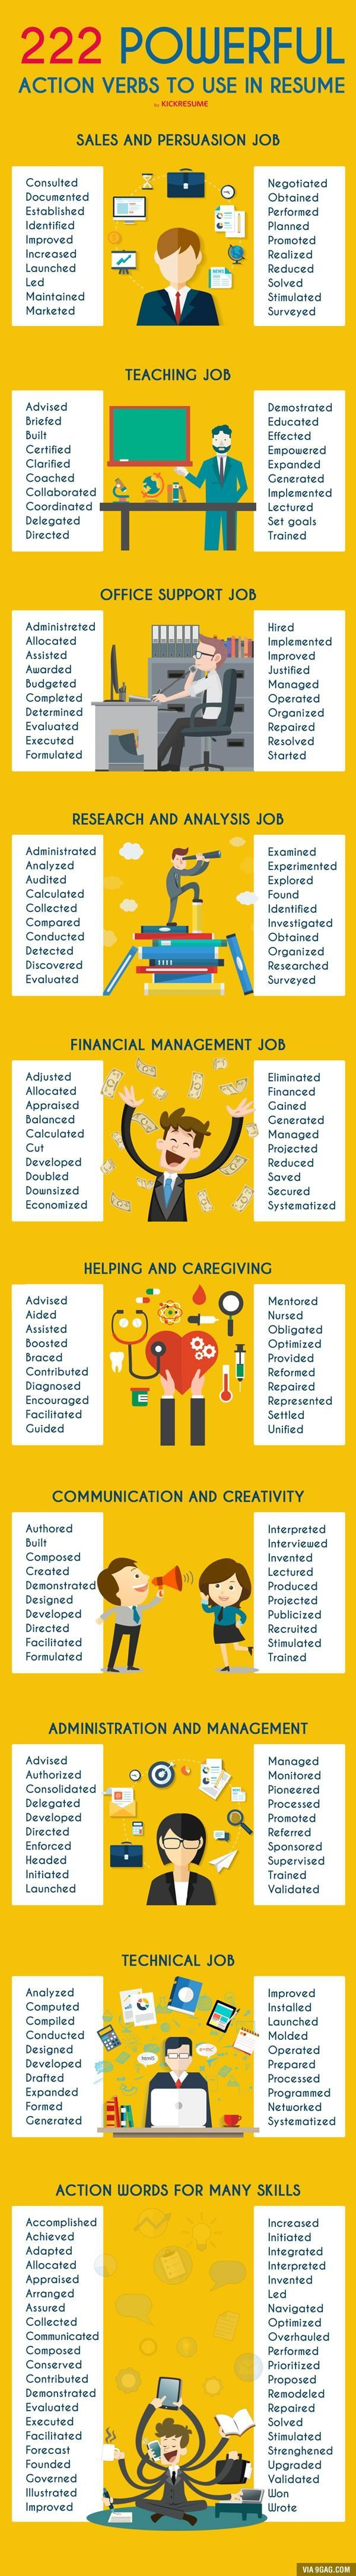 images about nurse getting keeping the job resume cheat sheet 222 action verbs to use in your new resume